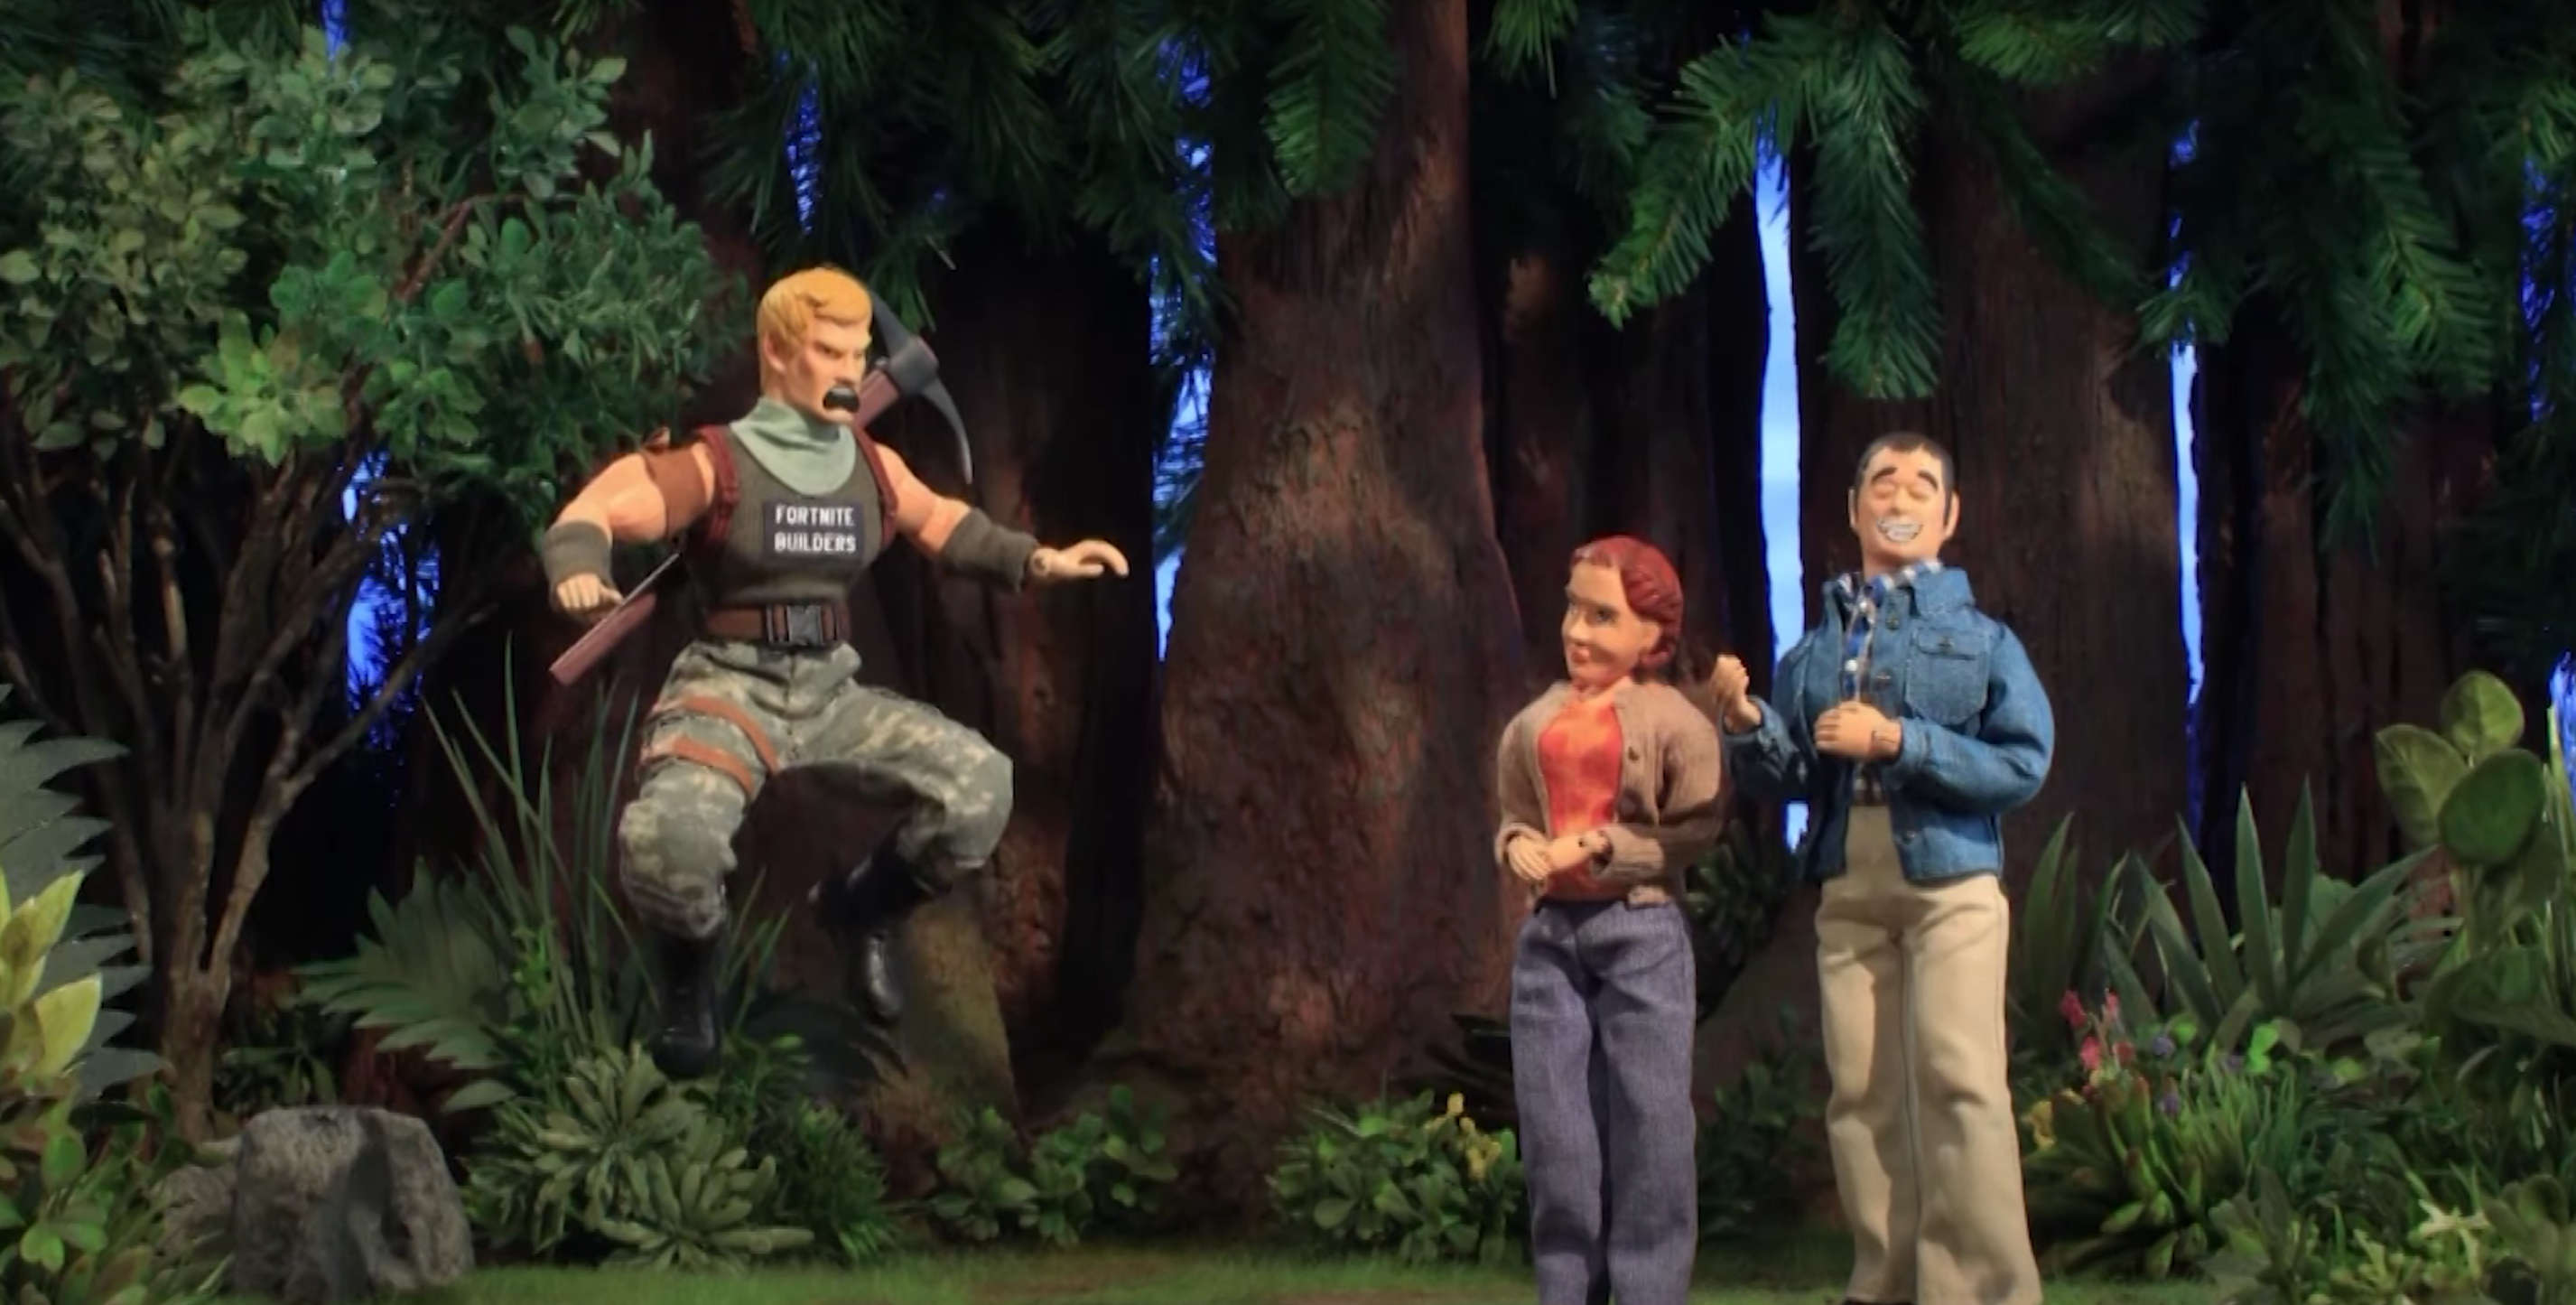 Fortnite and dream homes don't mix in Robot Chicken exclusive clip